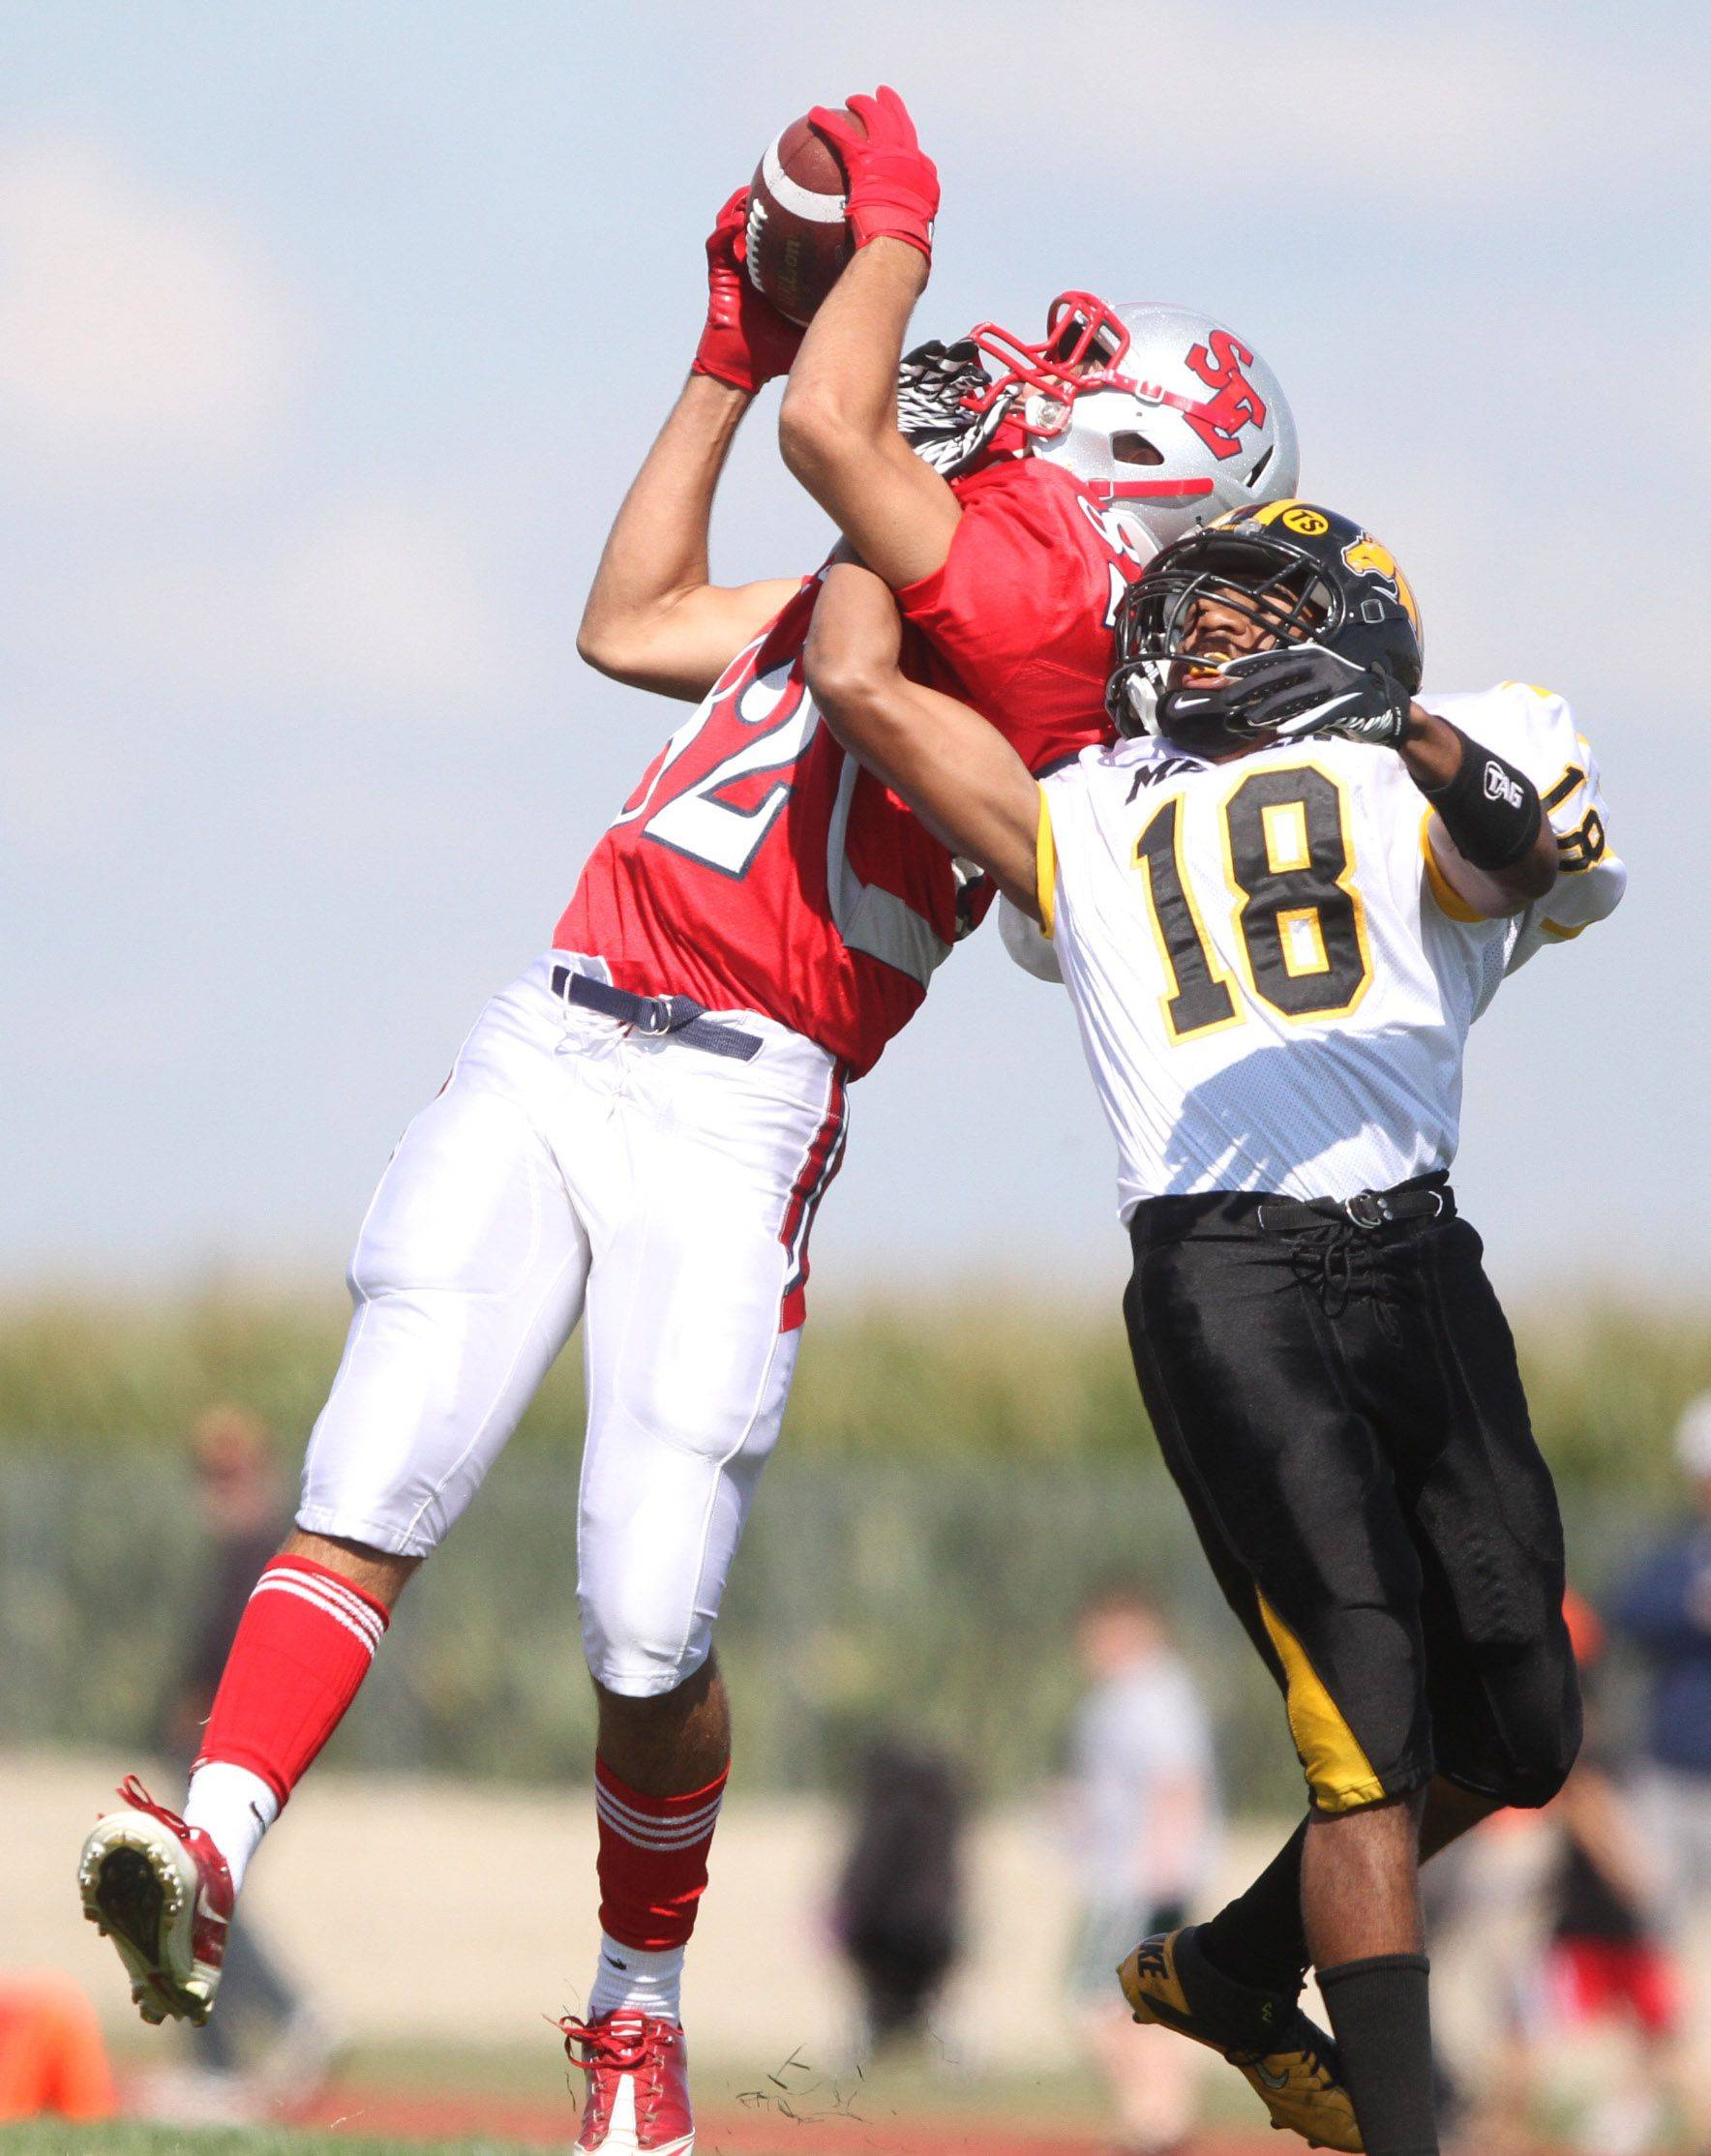 South Elgin's Joe Crivolio pulls in this pass against Metea Valley defender Preston Mitchell at South Elgin on Saturday, September 17th.